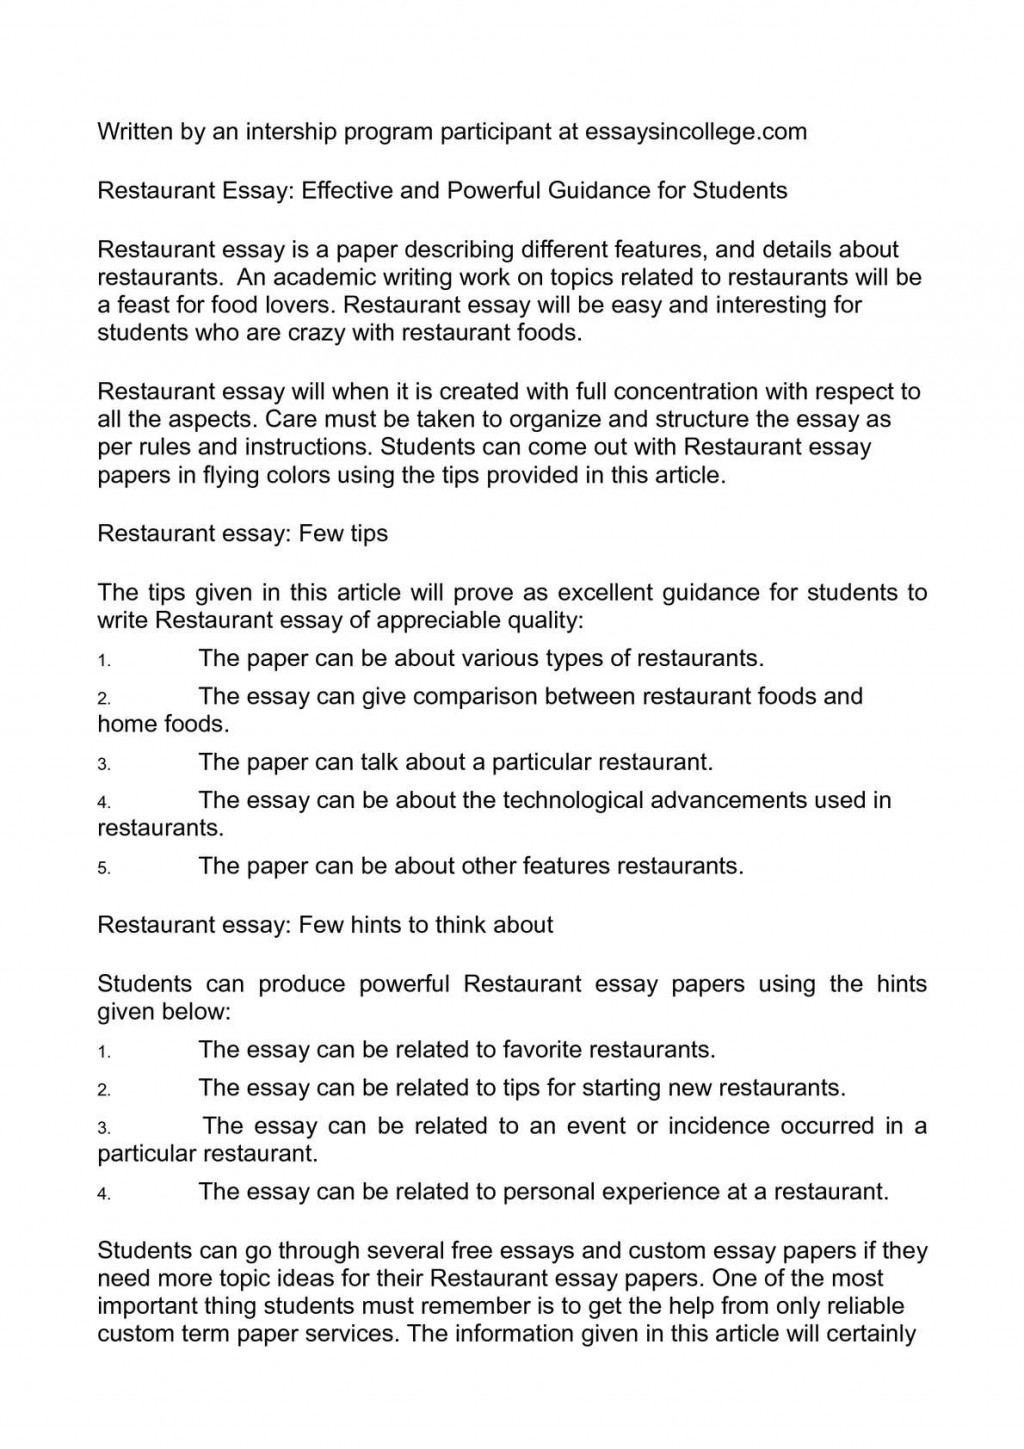 005 Essay Example About Favorite Restaurant Beautiful Your Write An Large